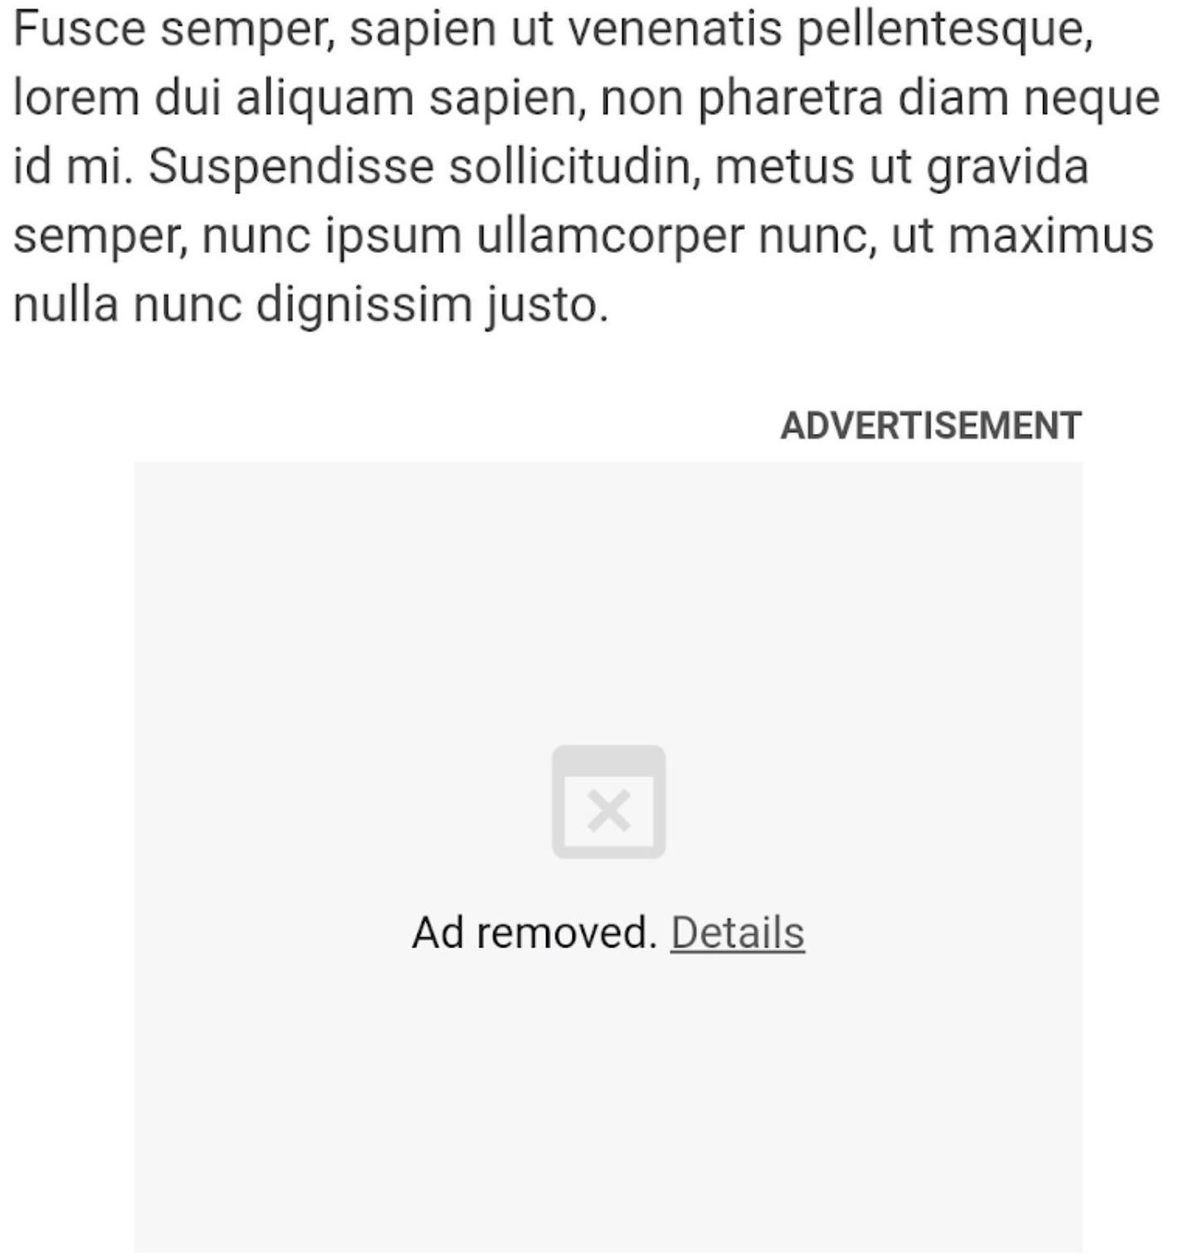 An example of a blocked resource-draining ad in Chrome.